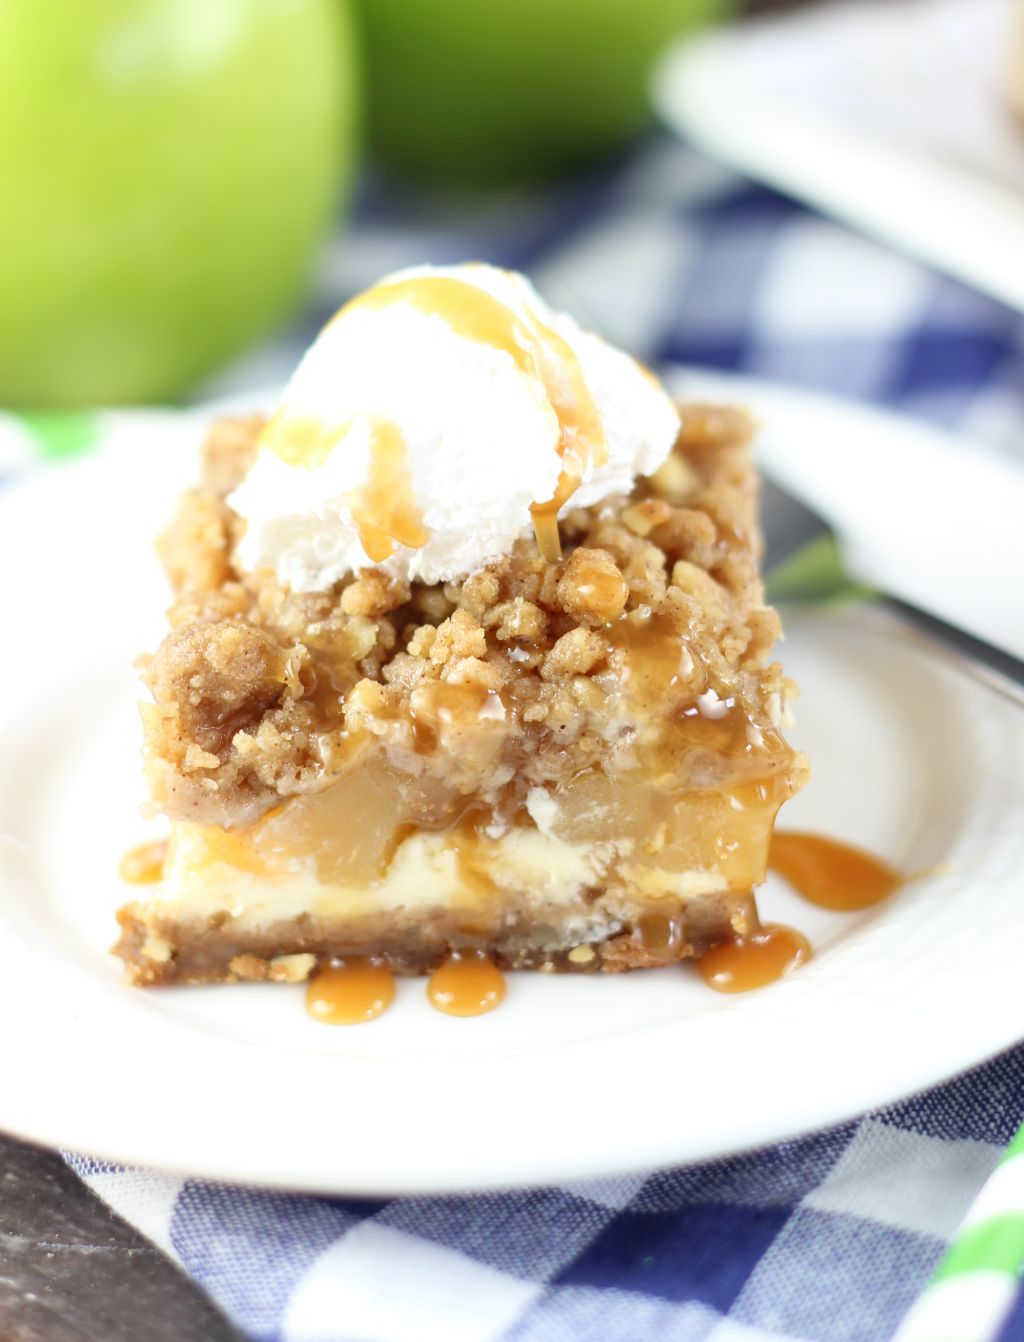 Apple pie and cheesecake come together in these flavorful bars that ...